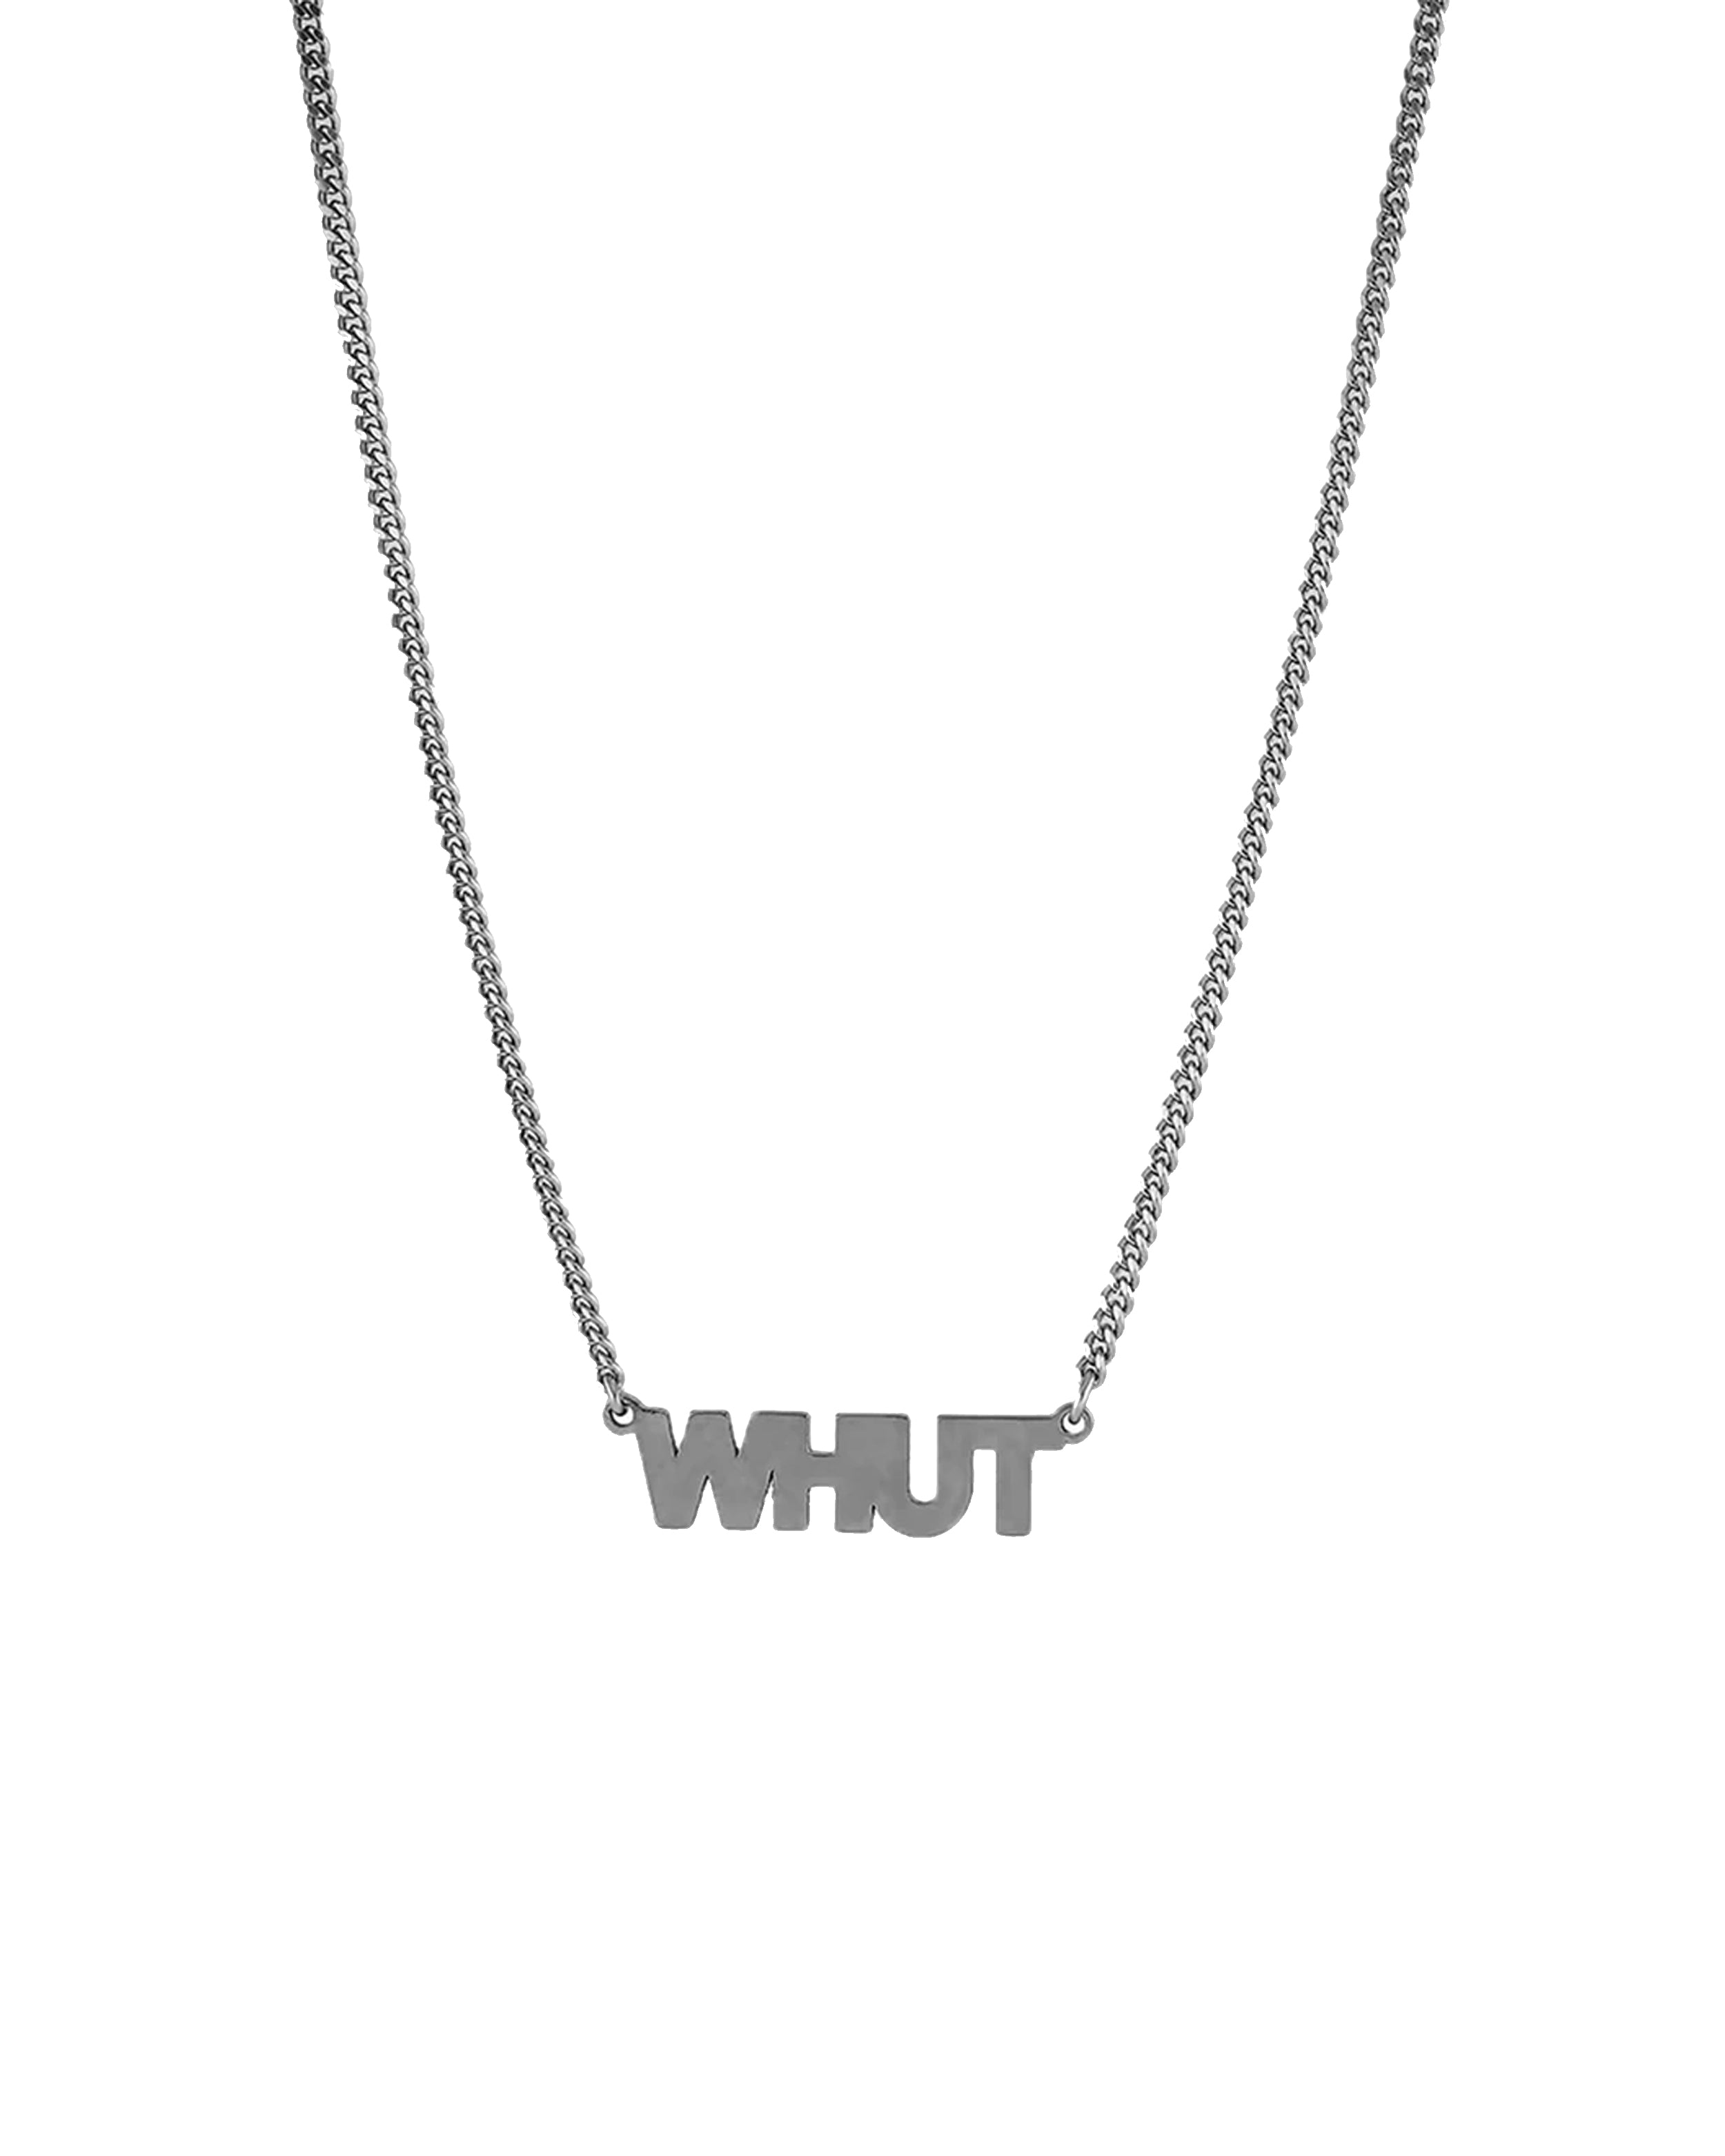 nicole miller whut cutout necklace in silver | sterling